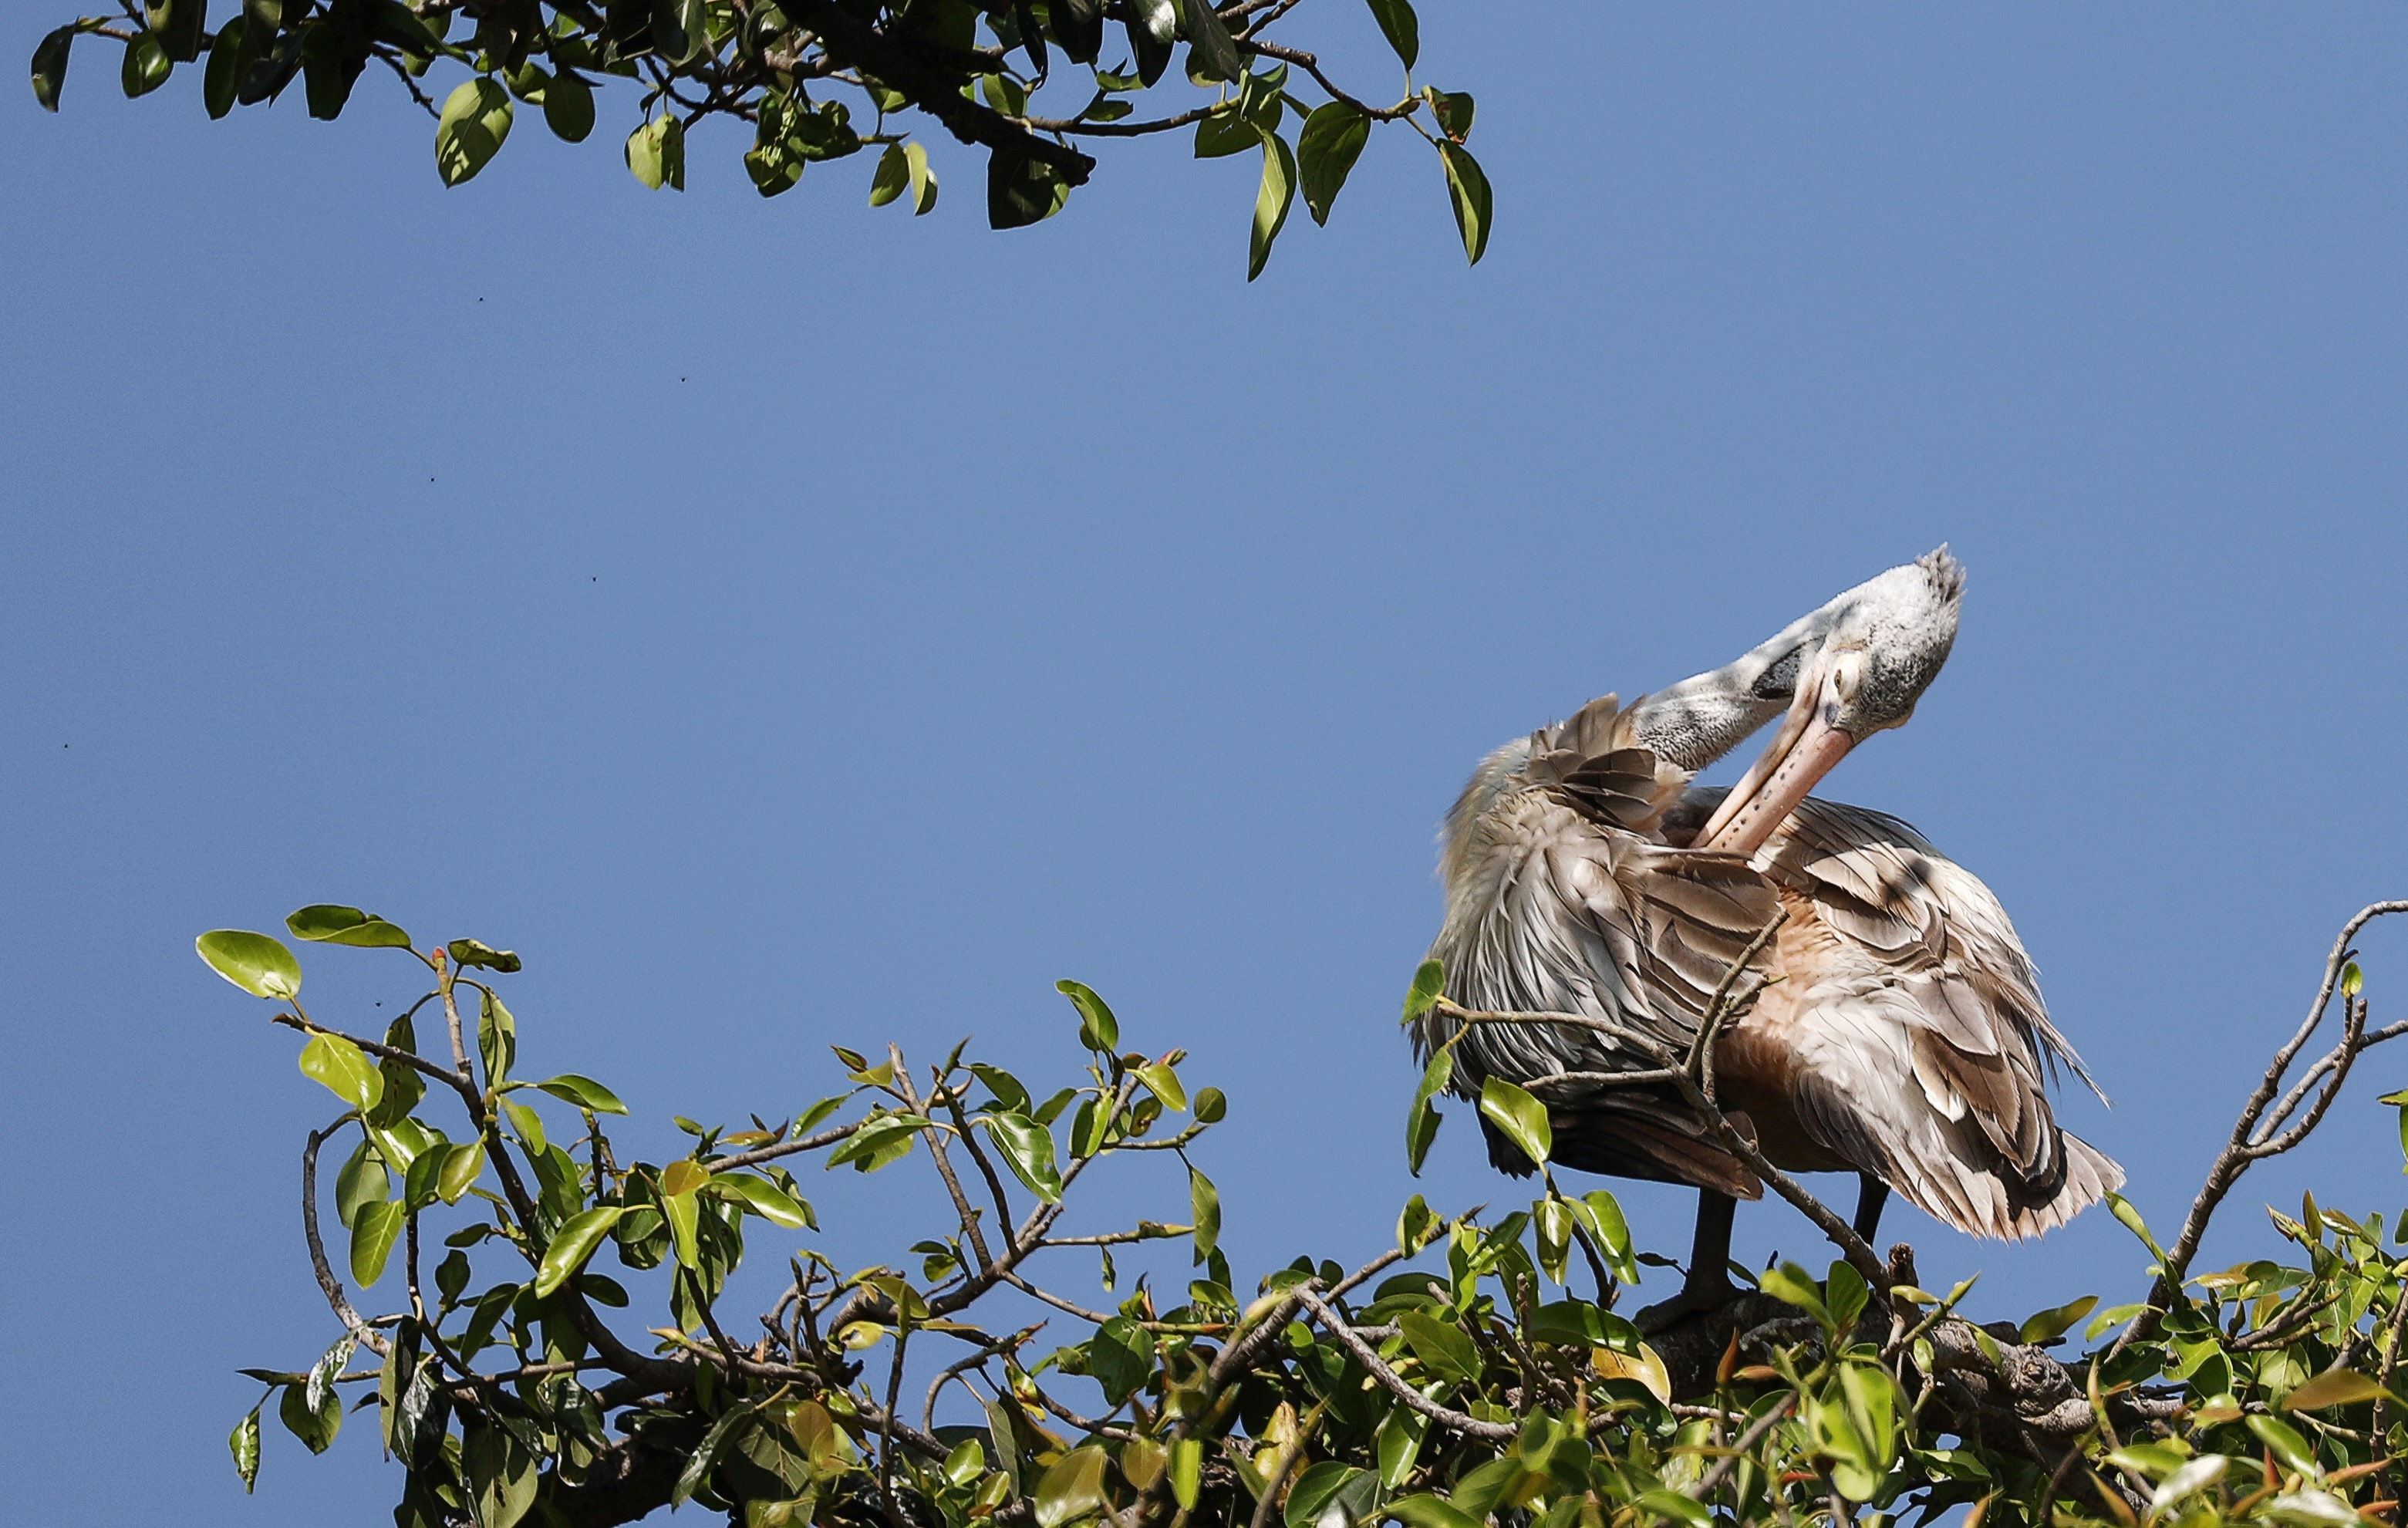 white and brown pelican perched on green tree branched during daytime